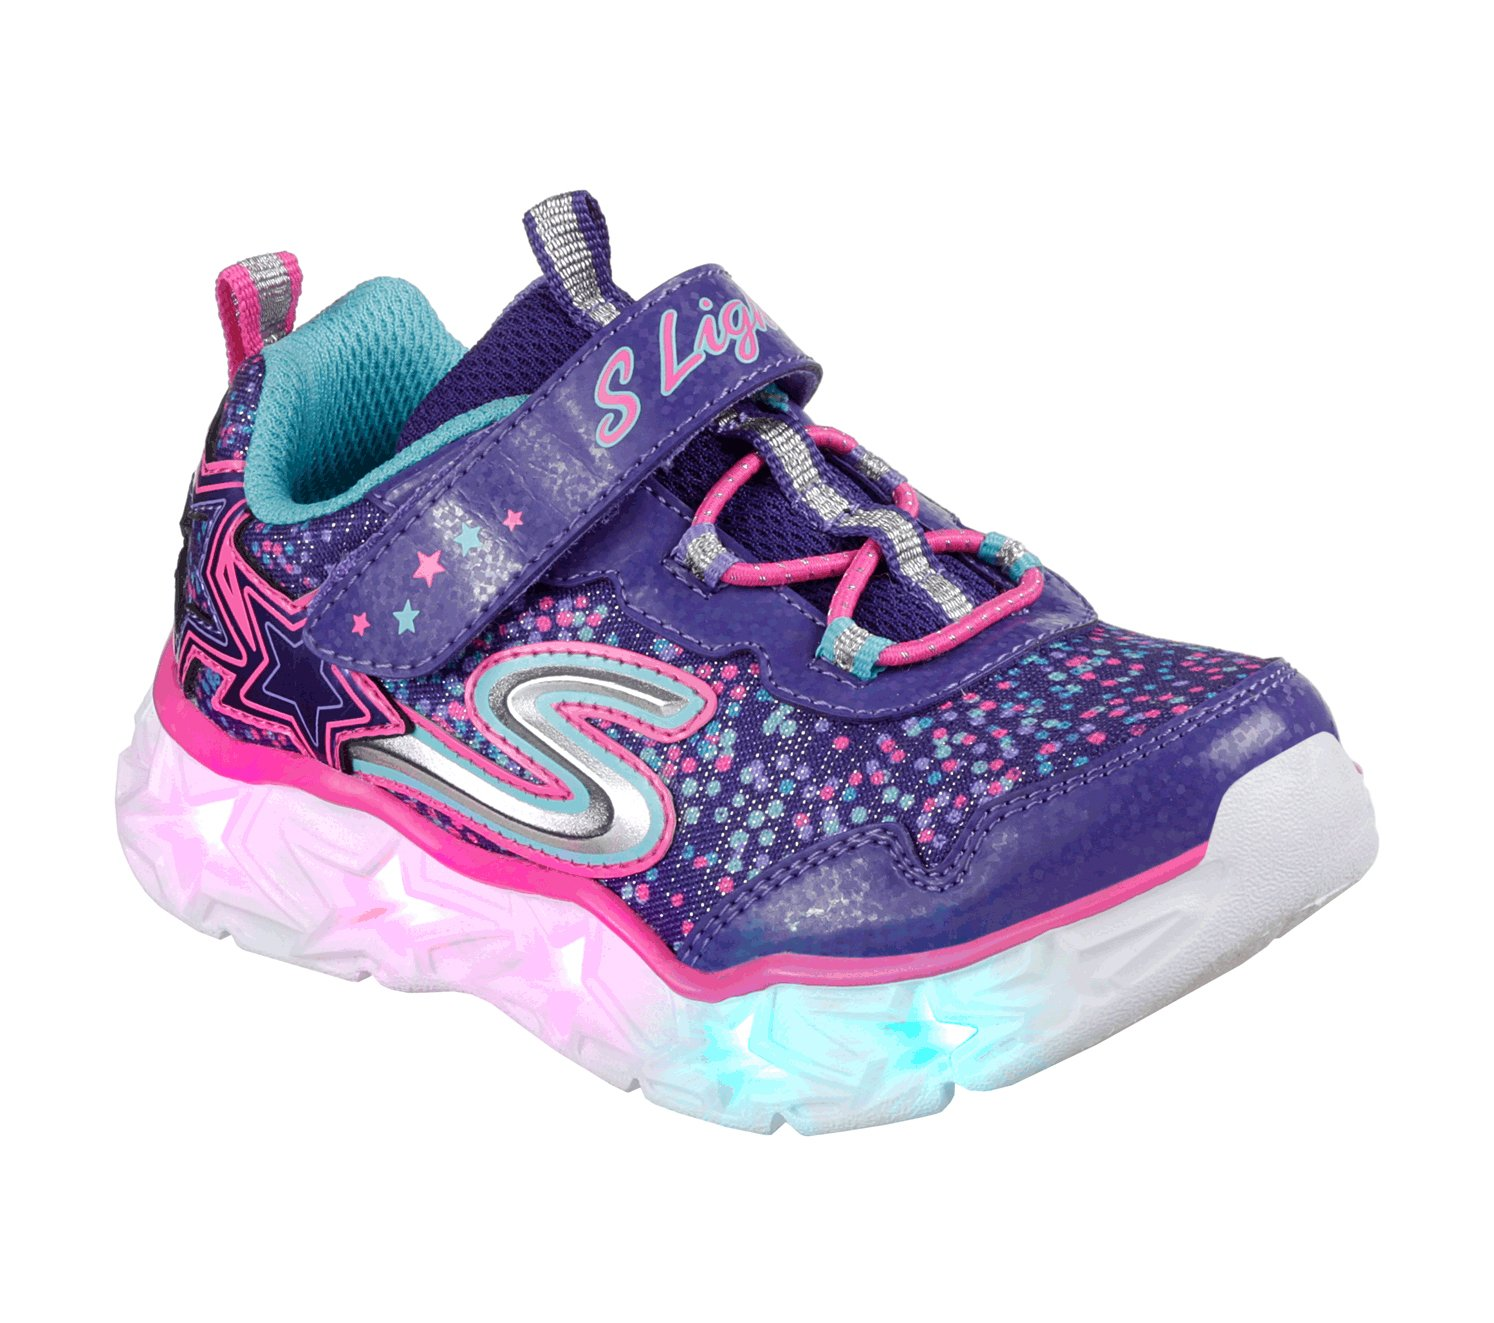 Skechers Fille Galaxy Lights, Baskets Fille Multicolore Lights, (Purple Skechers/Multicolour) e212a8f - reprogrammed.space